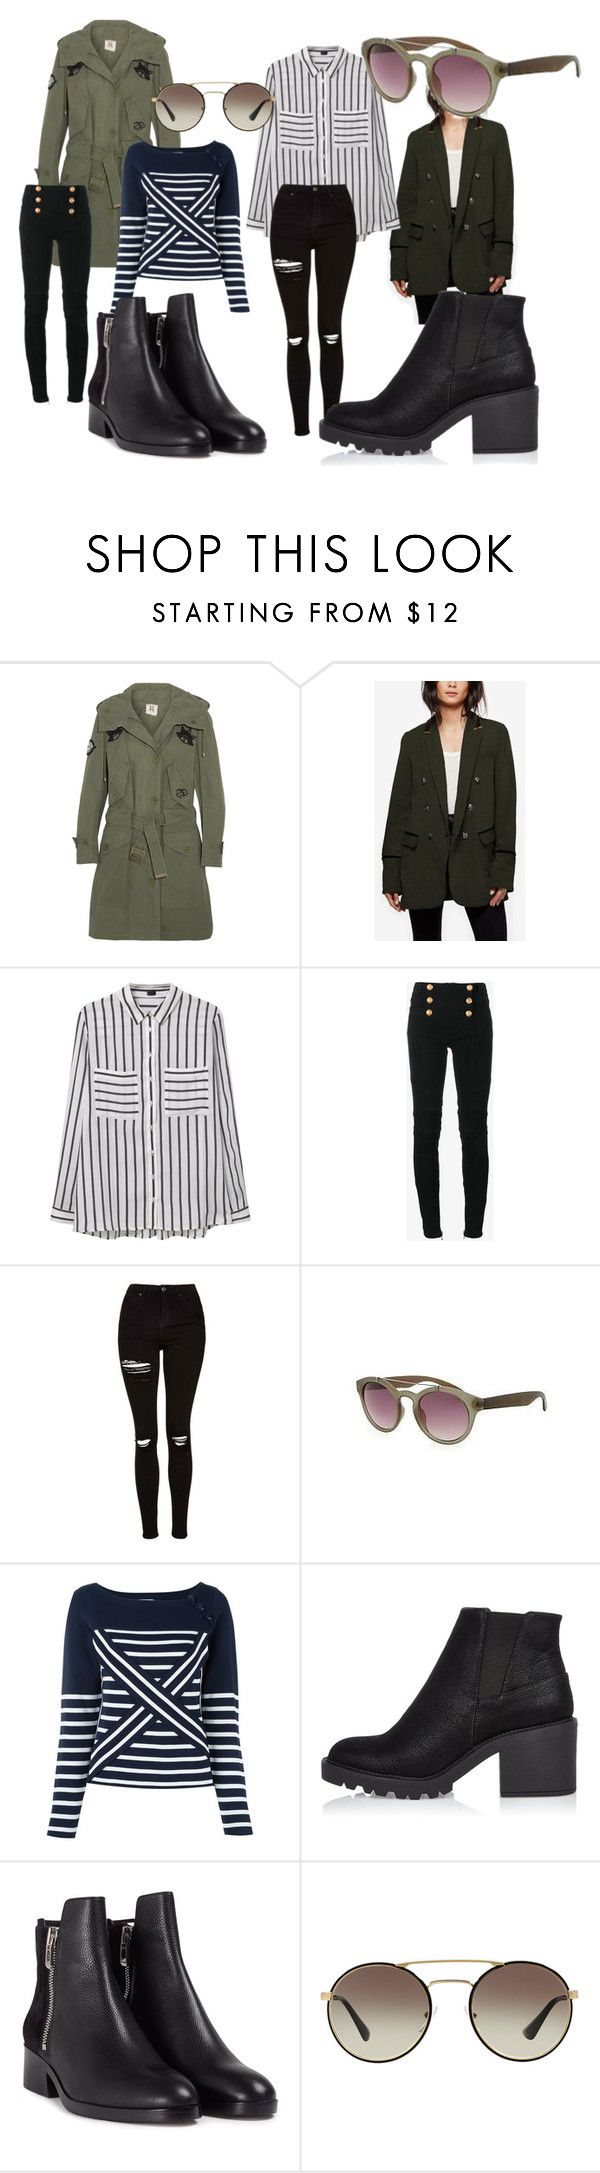 """""""Army Jackets for Fall"""" by jengrochol-1 on Polyvore featuring Figue, Free People, MANGO, Balmain, Topshop, Old Navy, Tommy Hilfiger, River Island, 3.1 Phillip Lim and Prada"""